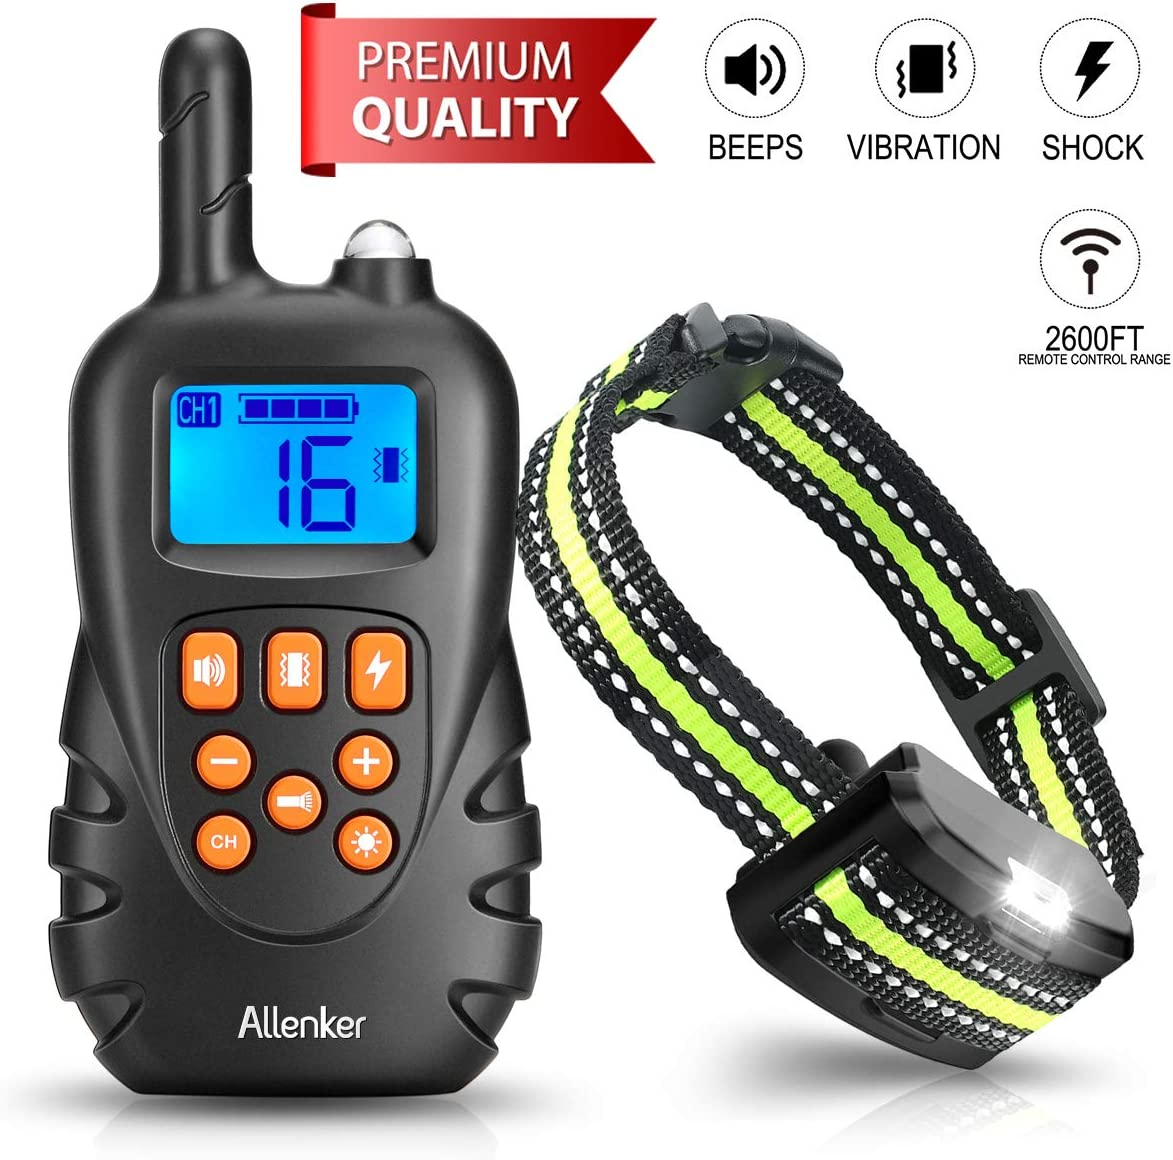 Dog Training Collar – Rechargeable Shock Collar for Dogs W Beep Vibration Humane Shock, 100 Waterproof Dog Shock Collar with Remote up to 2600Ft Range, 0 16 Shock Levels W 2-in- 1 Charger